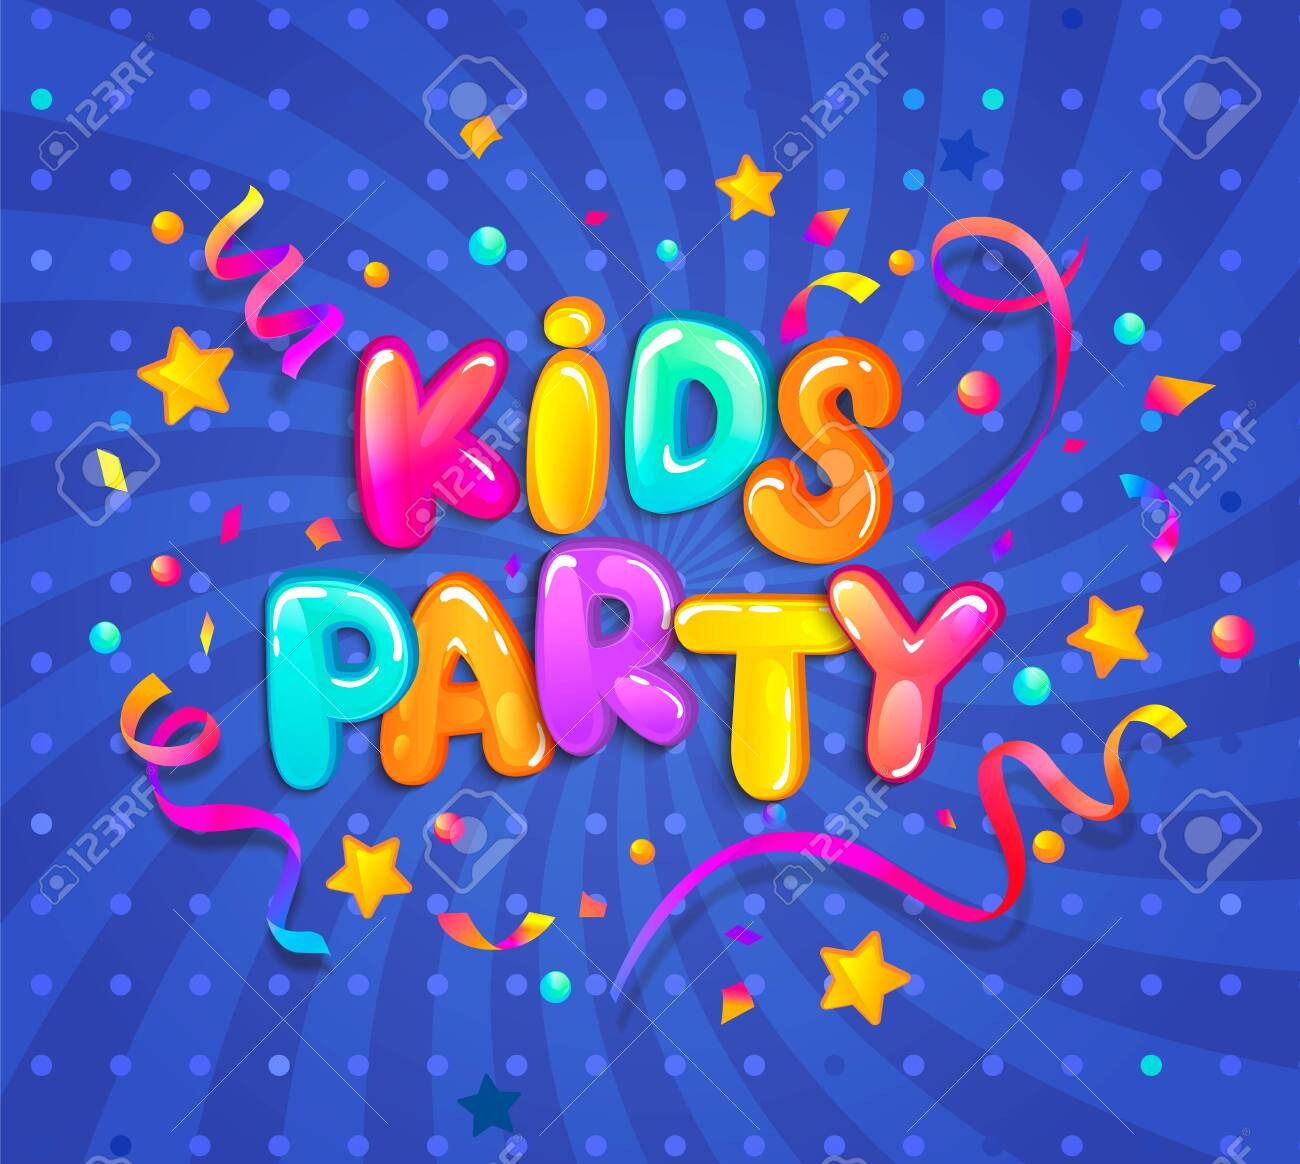 Kids party banner with confetti,serpentine sparkles for greetings,invitations for evening parties.Place for fun and play, kids game room for birthday party. Poster for childrens playroom decor.Vector - 132577041